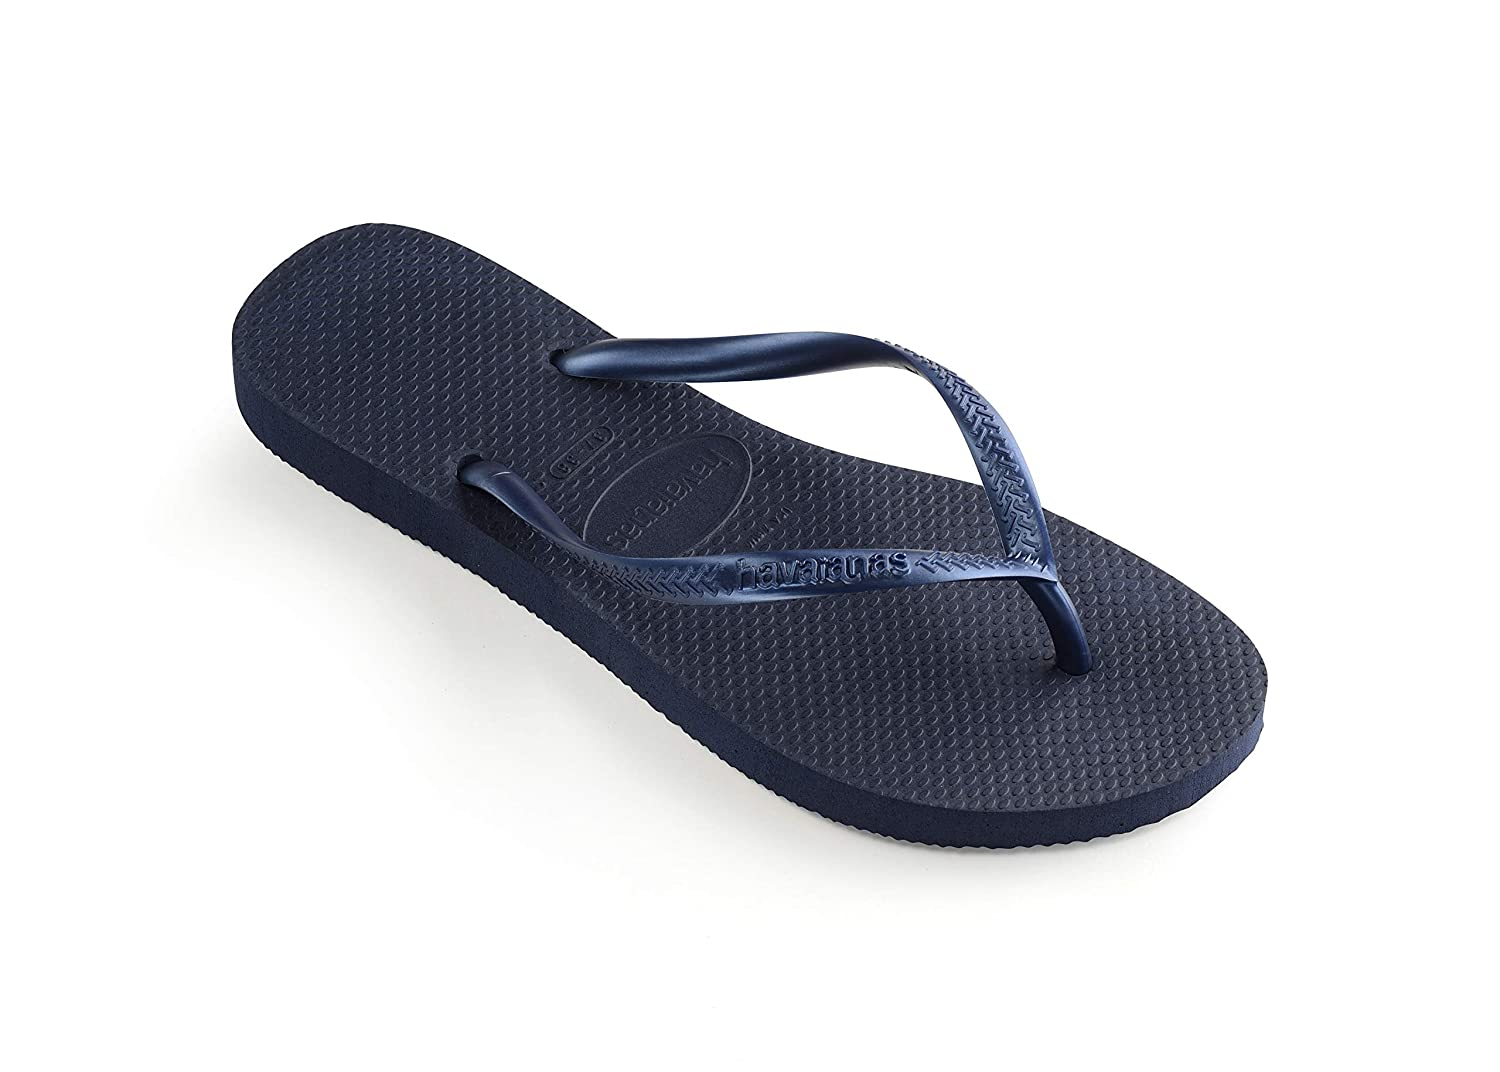 a7c5740bcf6248 Amazon.com  Havaianas Women s Slim Sandal Flip Flop Navy Blue 39 40 BR  (9-10 M US)  Havaianas  Shoes